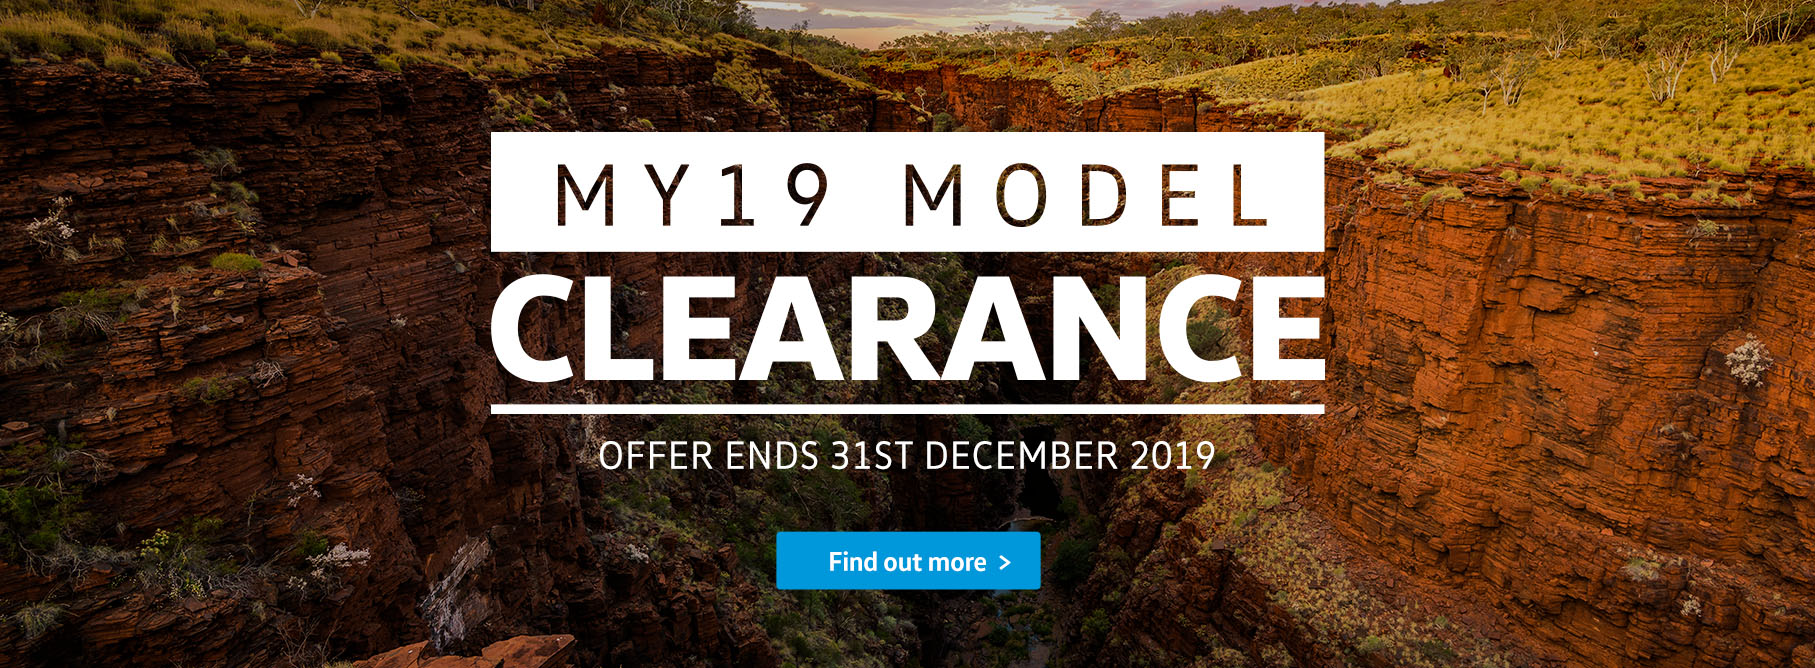 MY19 Model Clearance Commercial